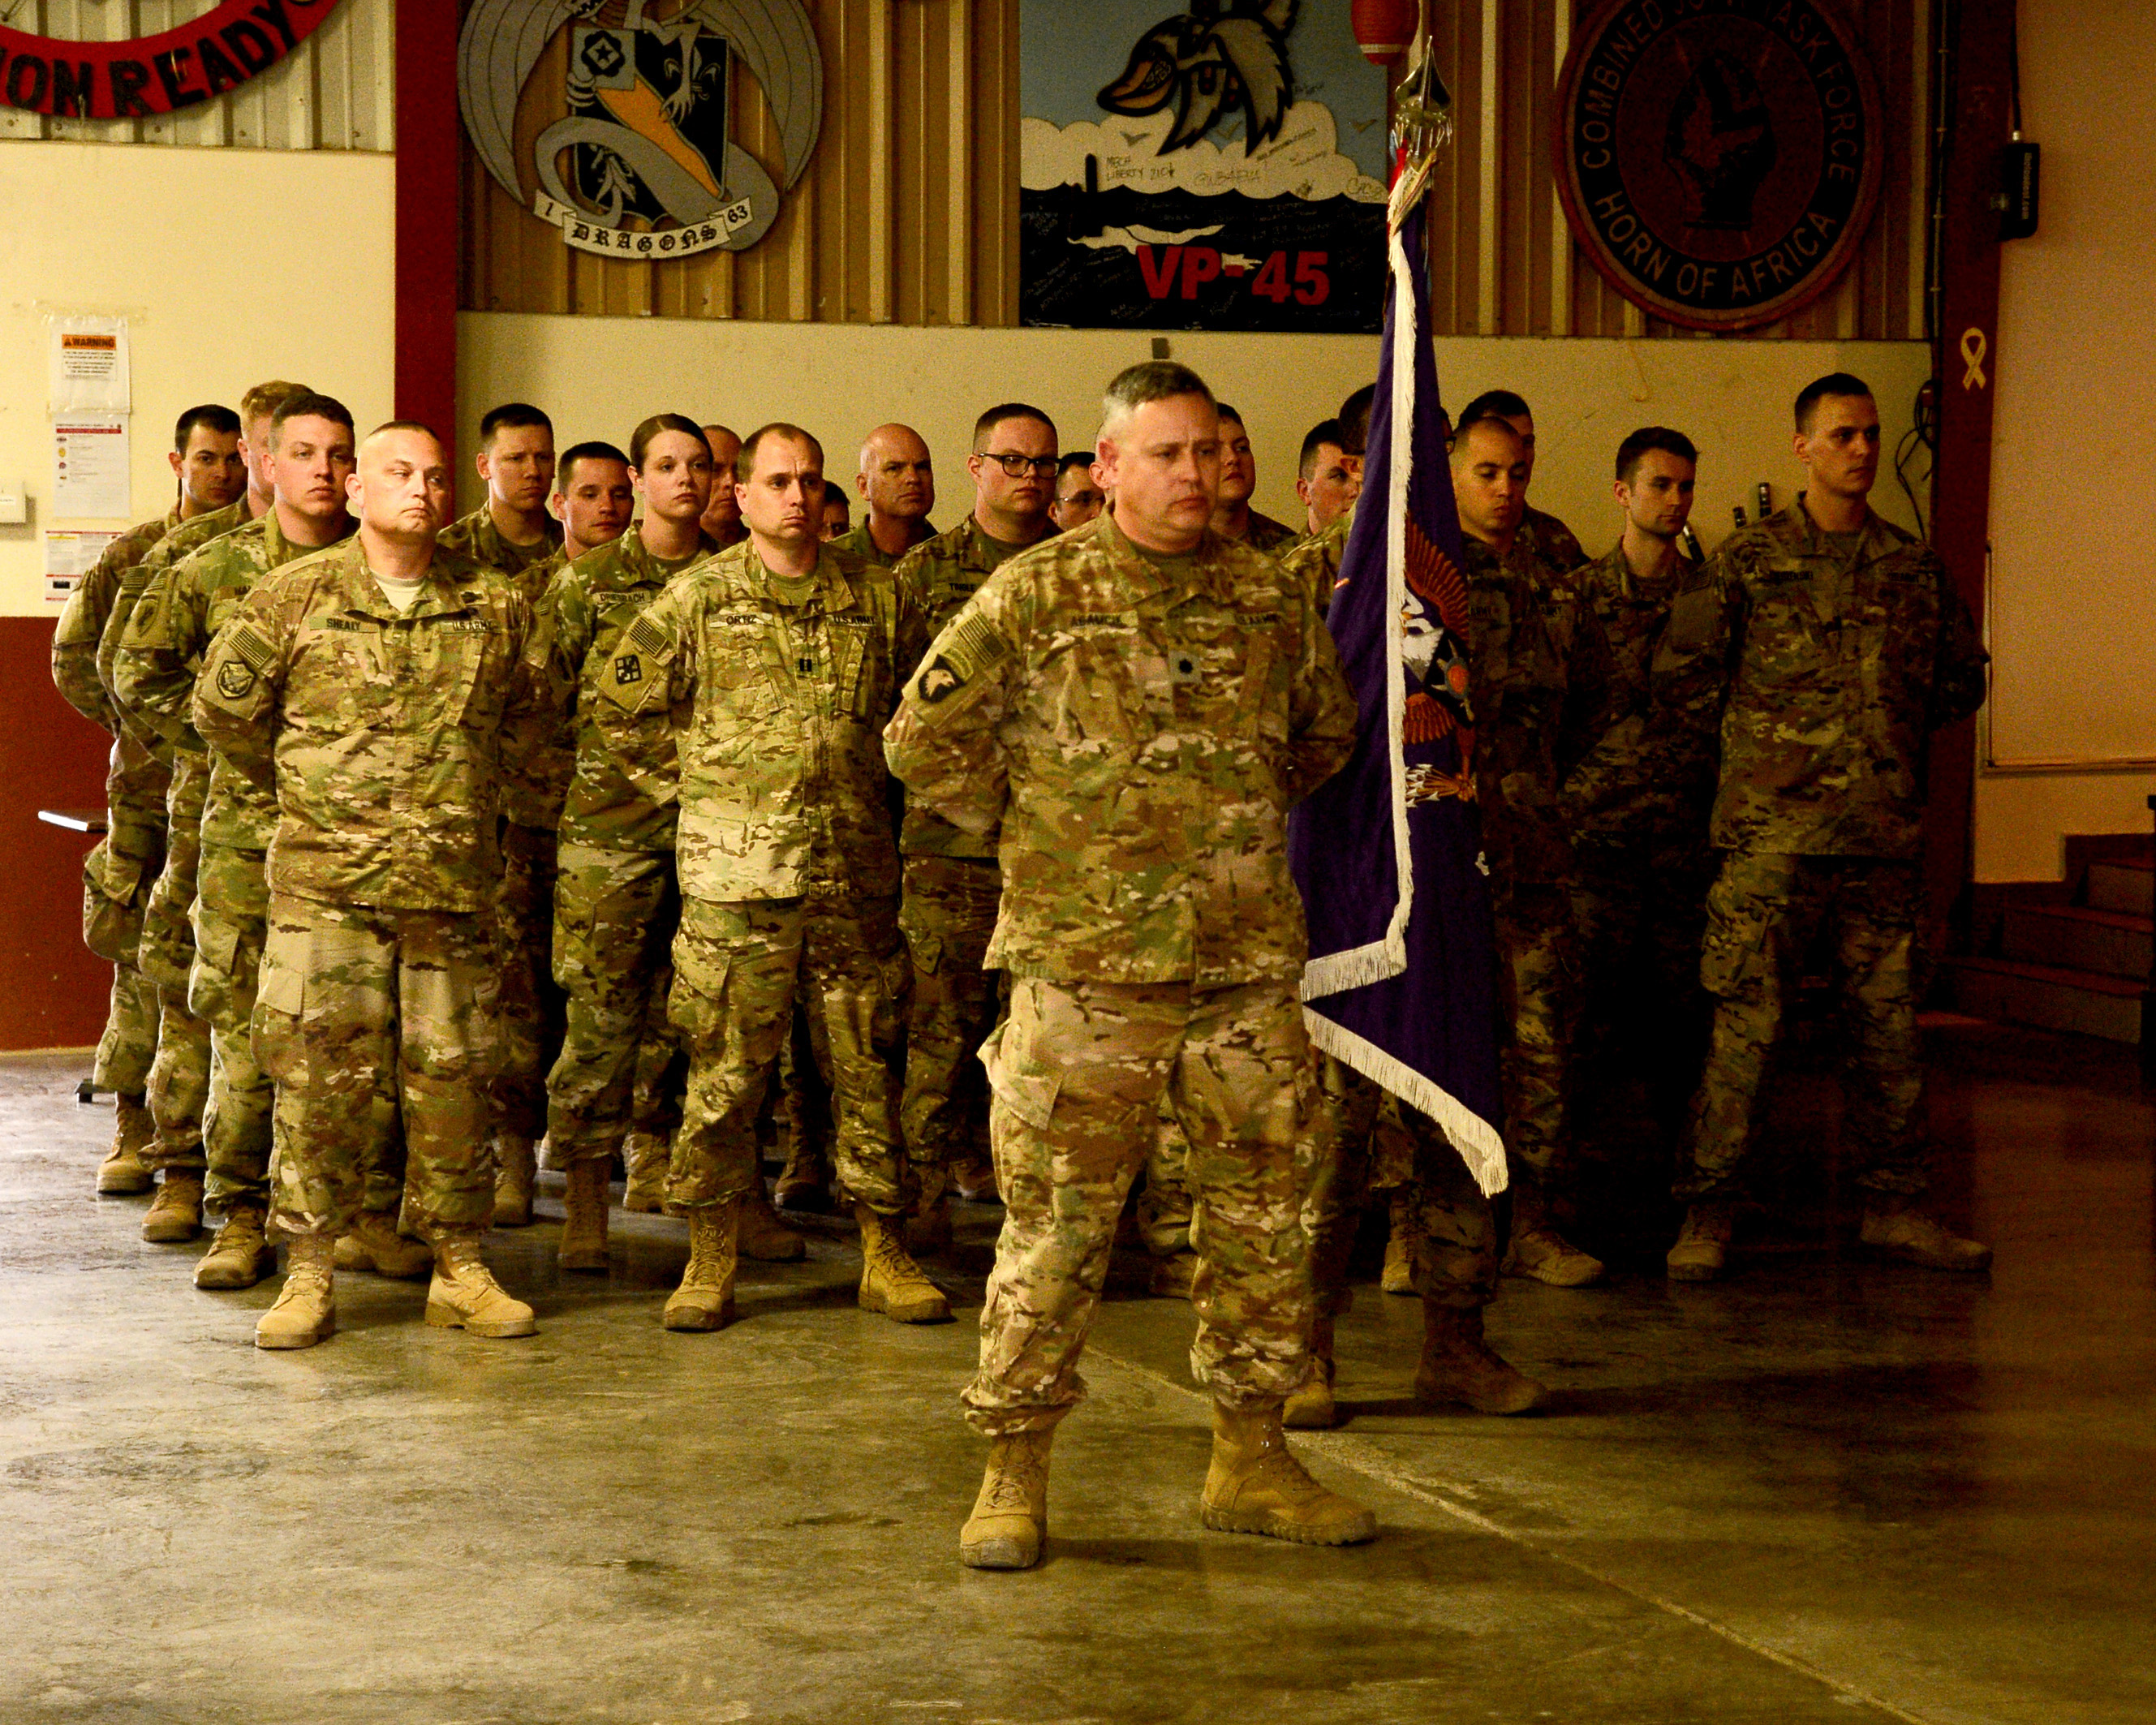 The U.S. Army 404th Civil Affairs Battalion, commanded by U.S. Army Lt. Col. Stefan Adamcik assumed authority from the 443rd Civil Affairs Battalion, at Camp Lemonnier, Djibouti, Feb. 3, 2018. The 404th will conduct military-to-military engagements to strengthen partner nation capacity and relationships with local military forces, civilian populations and civilian authorities. They also advise the Combined Joint Task Force Horn of Africa commanding general on the civil environment. (U.S. Navy Photo by Mass Communication Specialist 2nd Class Timothy M. Ahearn)